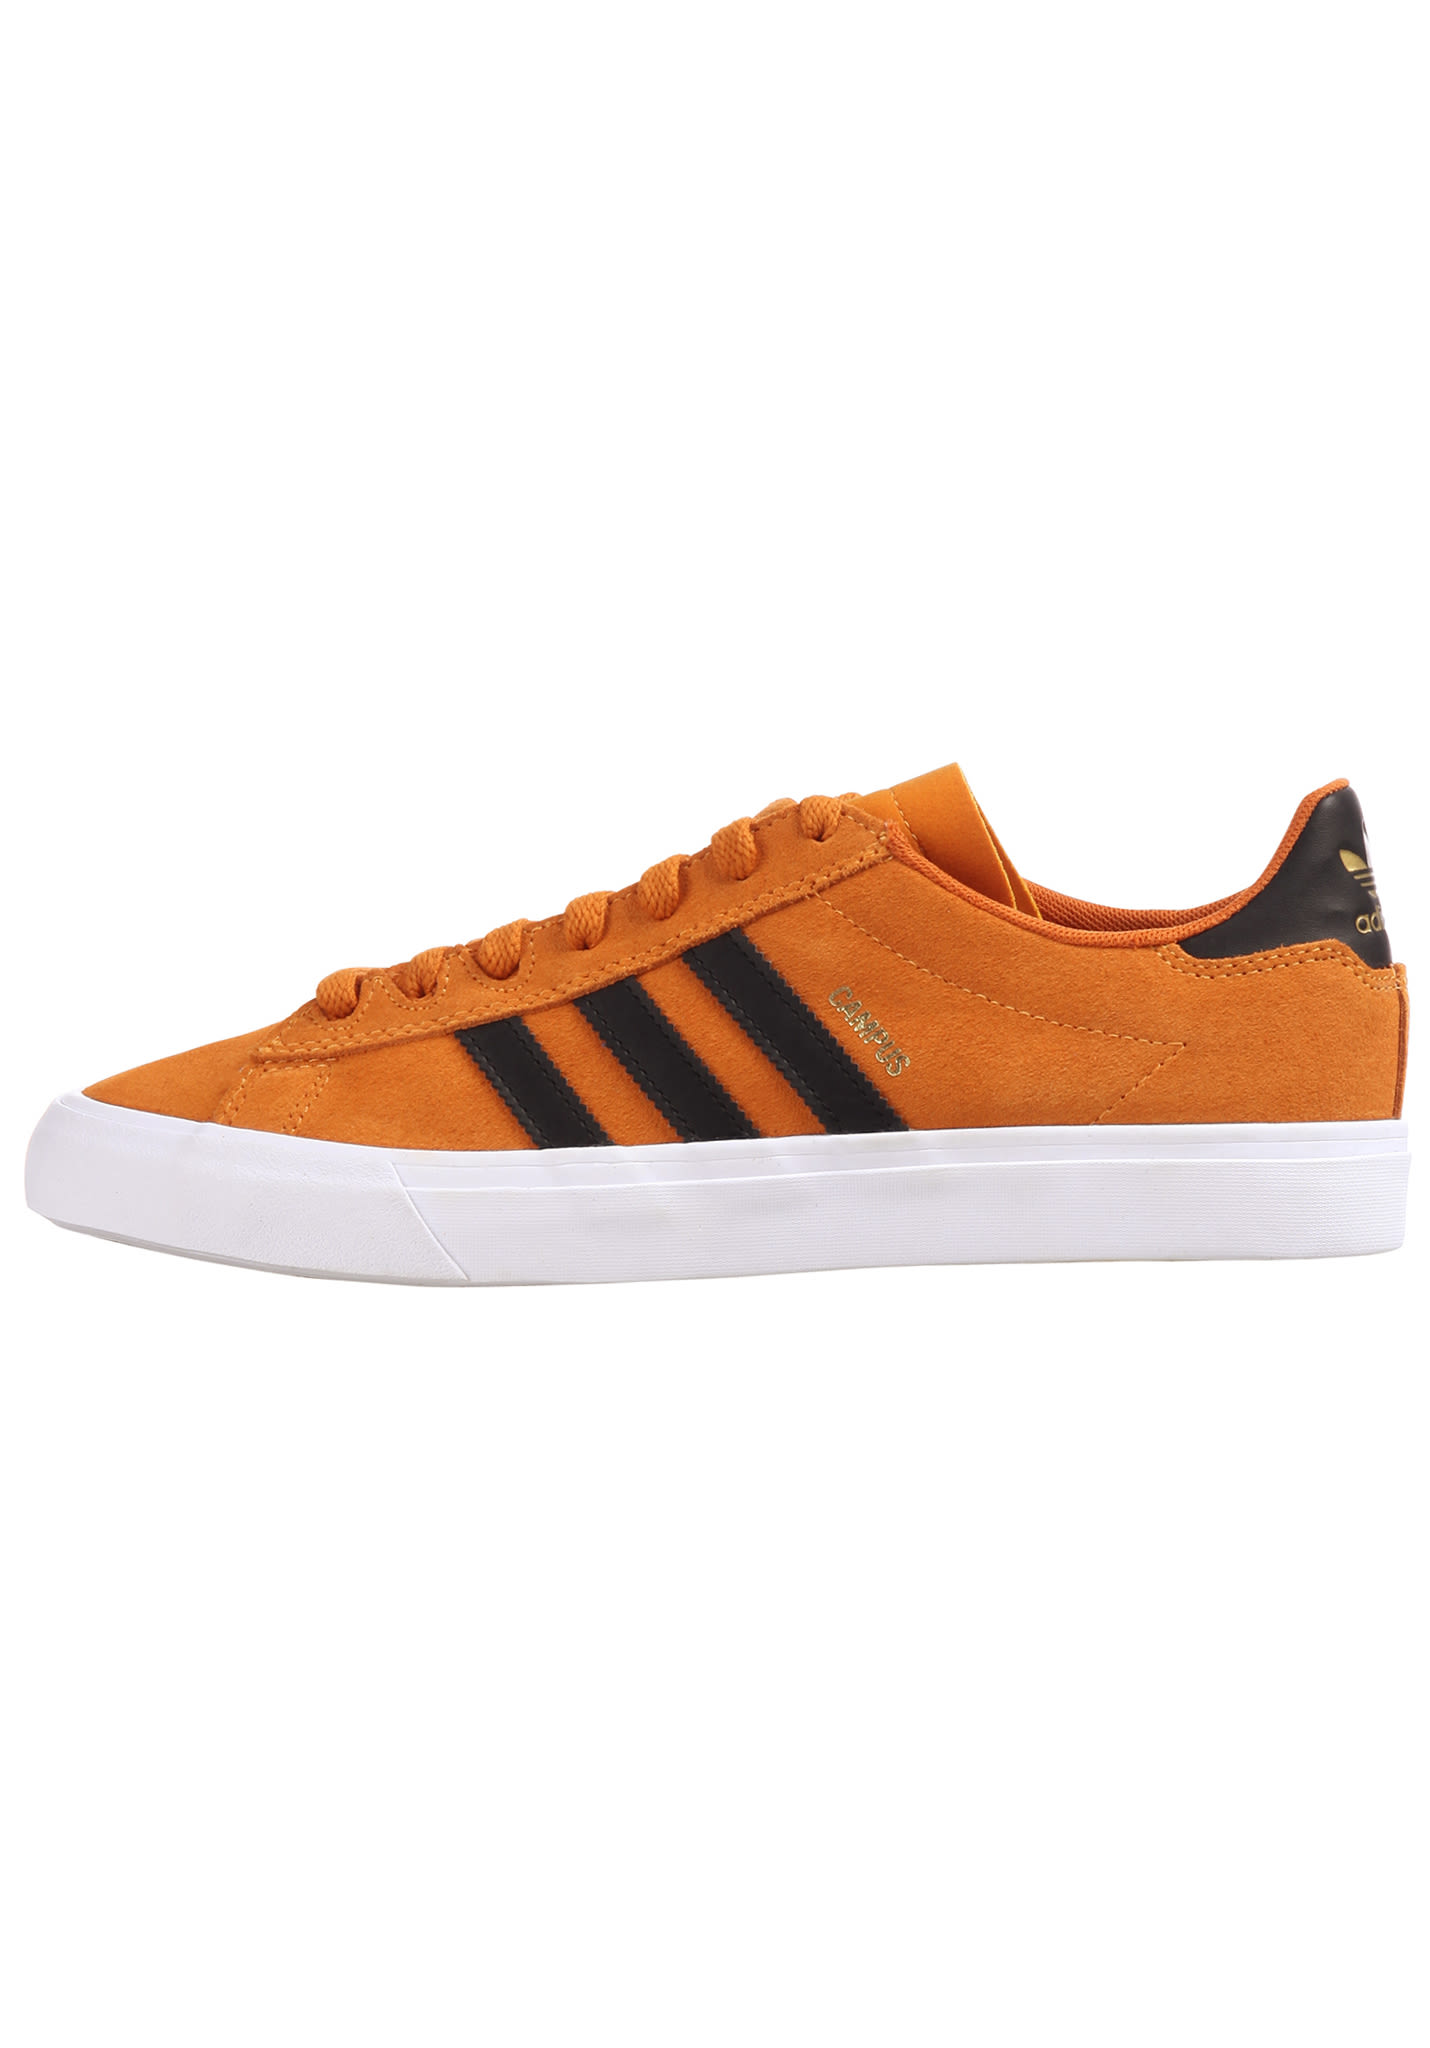 hot sale online 8ec28 356b6 Adidas Skateboarding Campus Vulc II - Baskets pour Homme - Orange - Planet  Sports